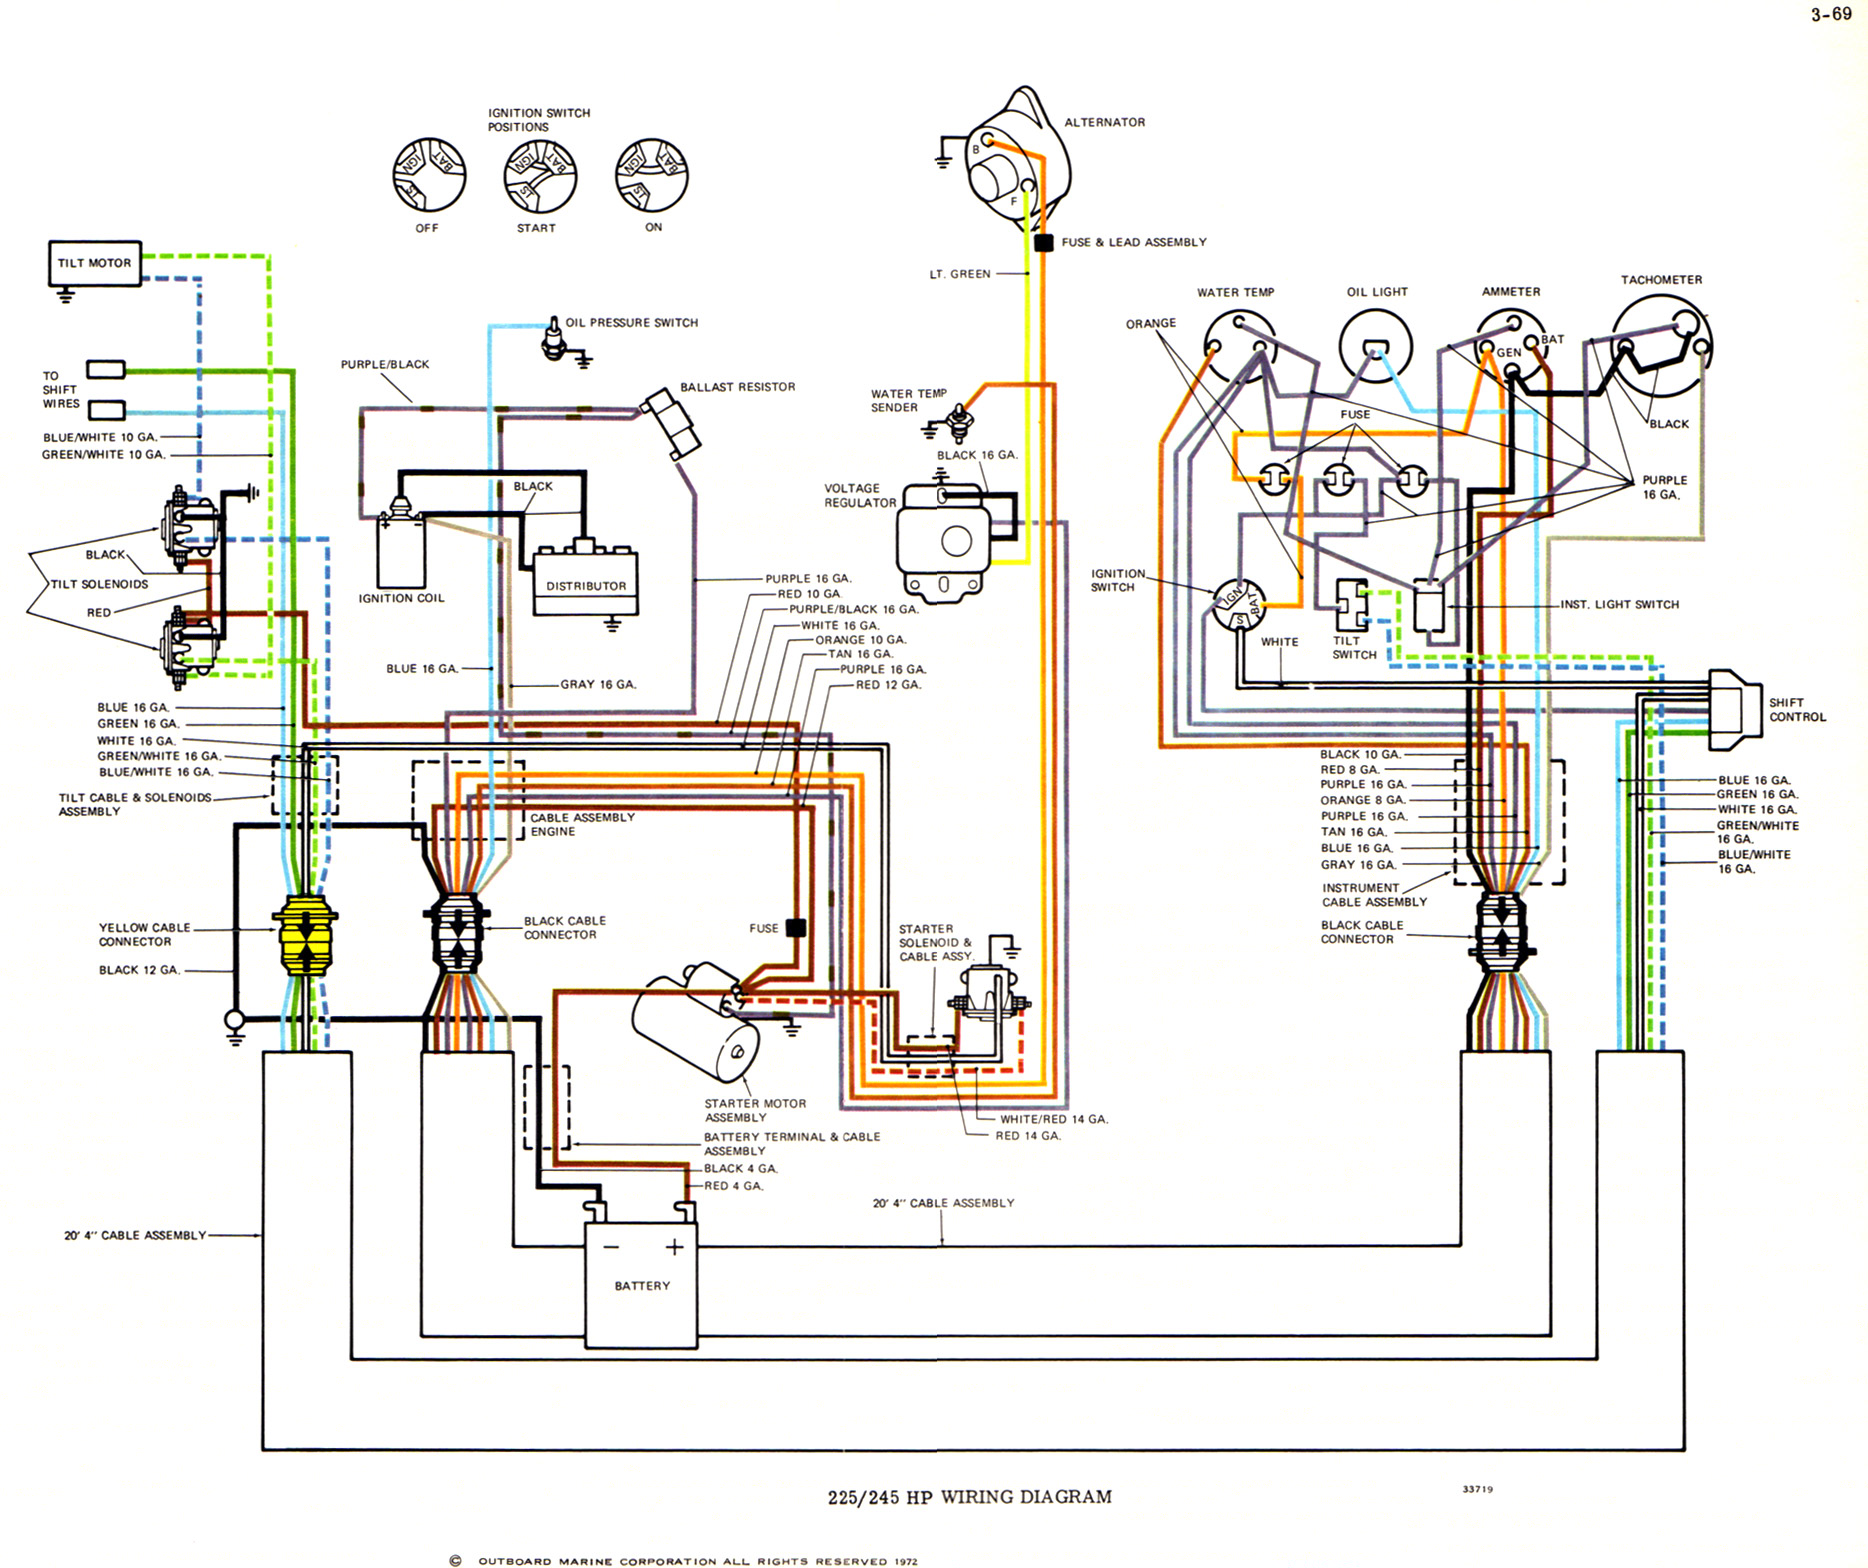 73_OMC_V8_all_big omc boat technical info marine wiring diagrams at soozxer.org